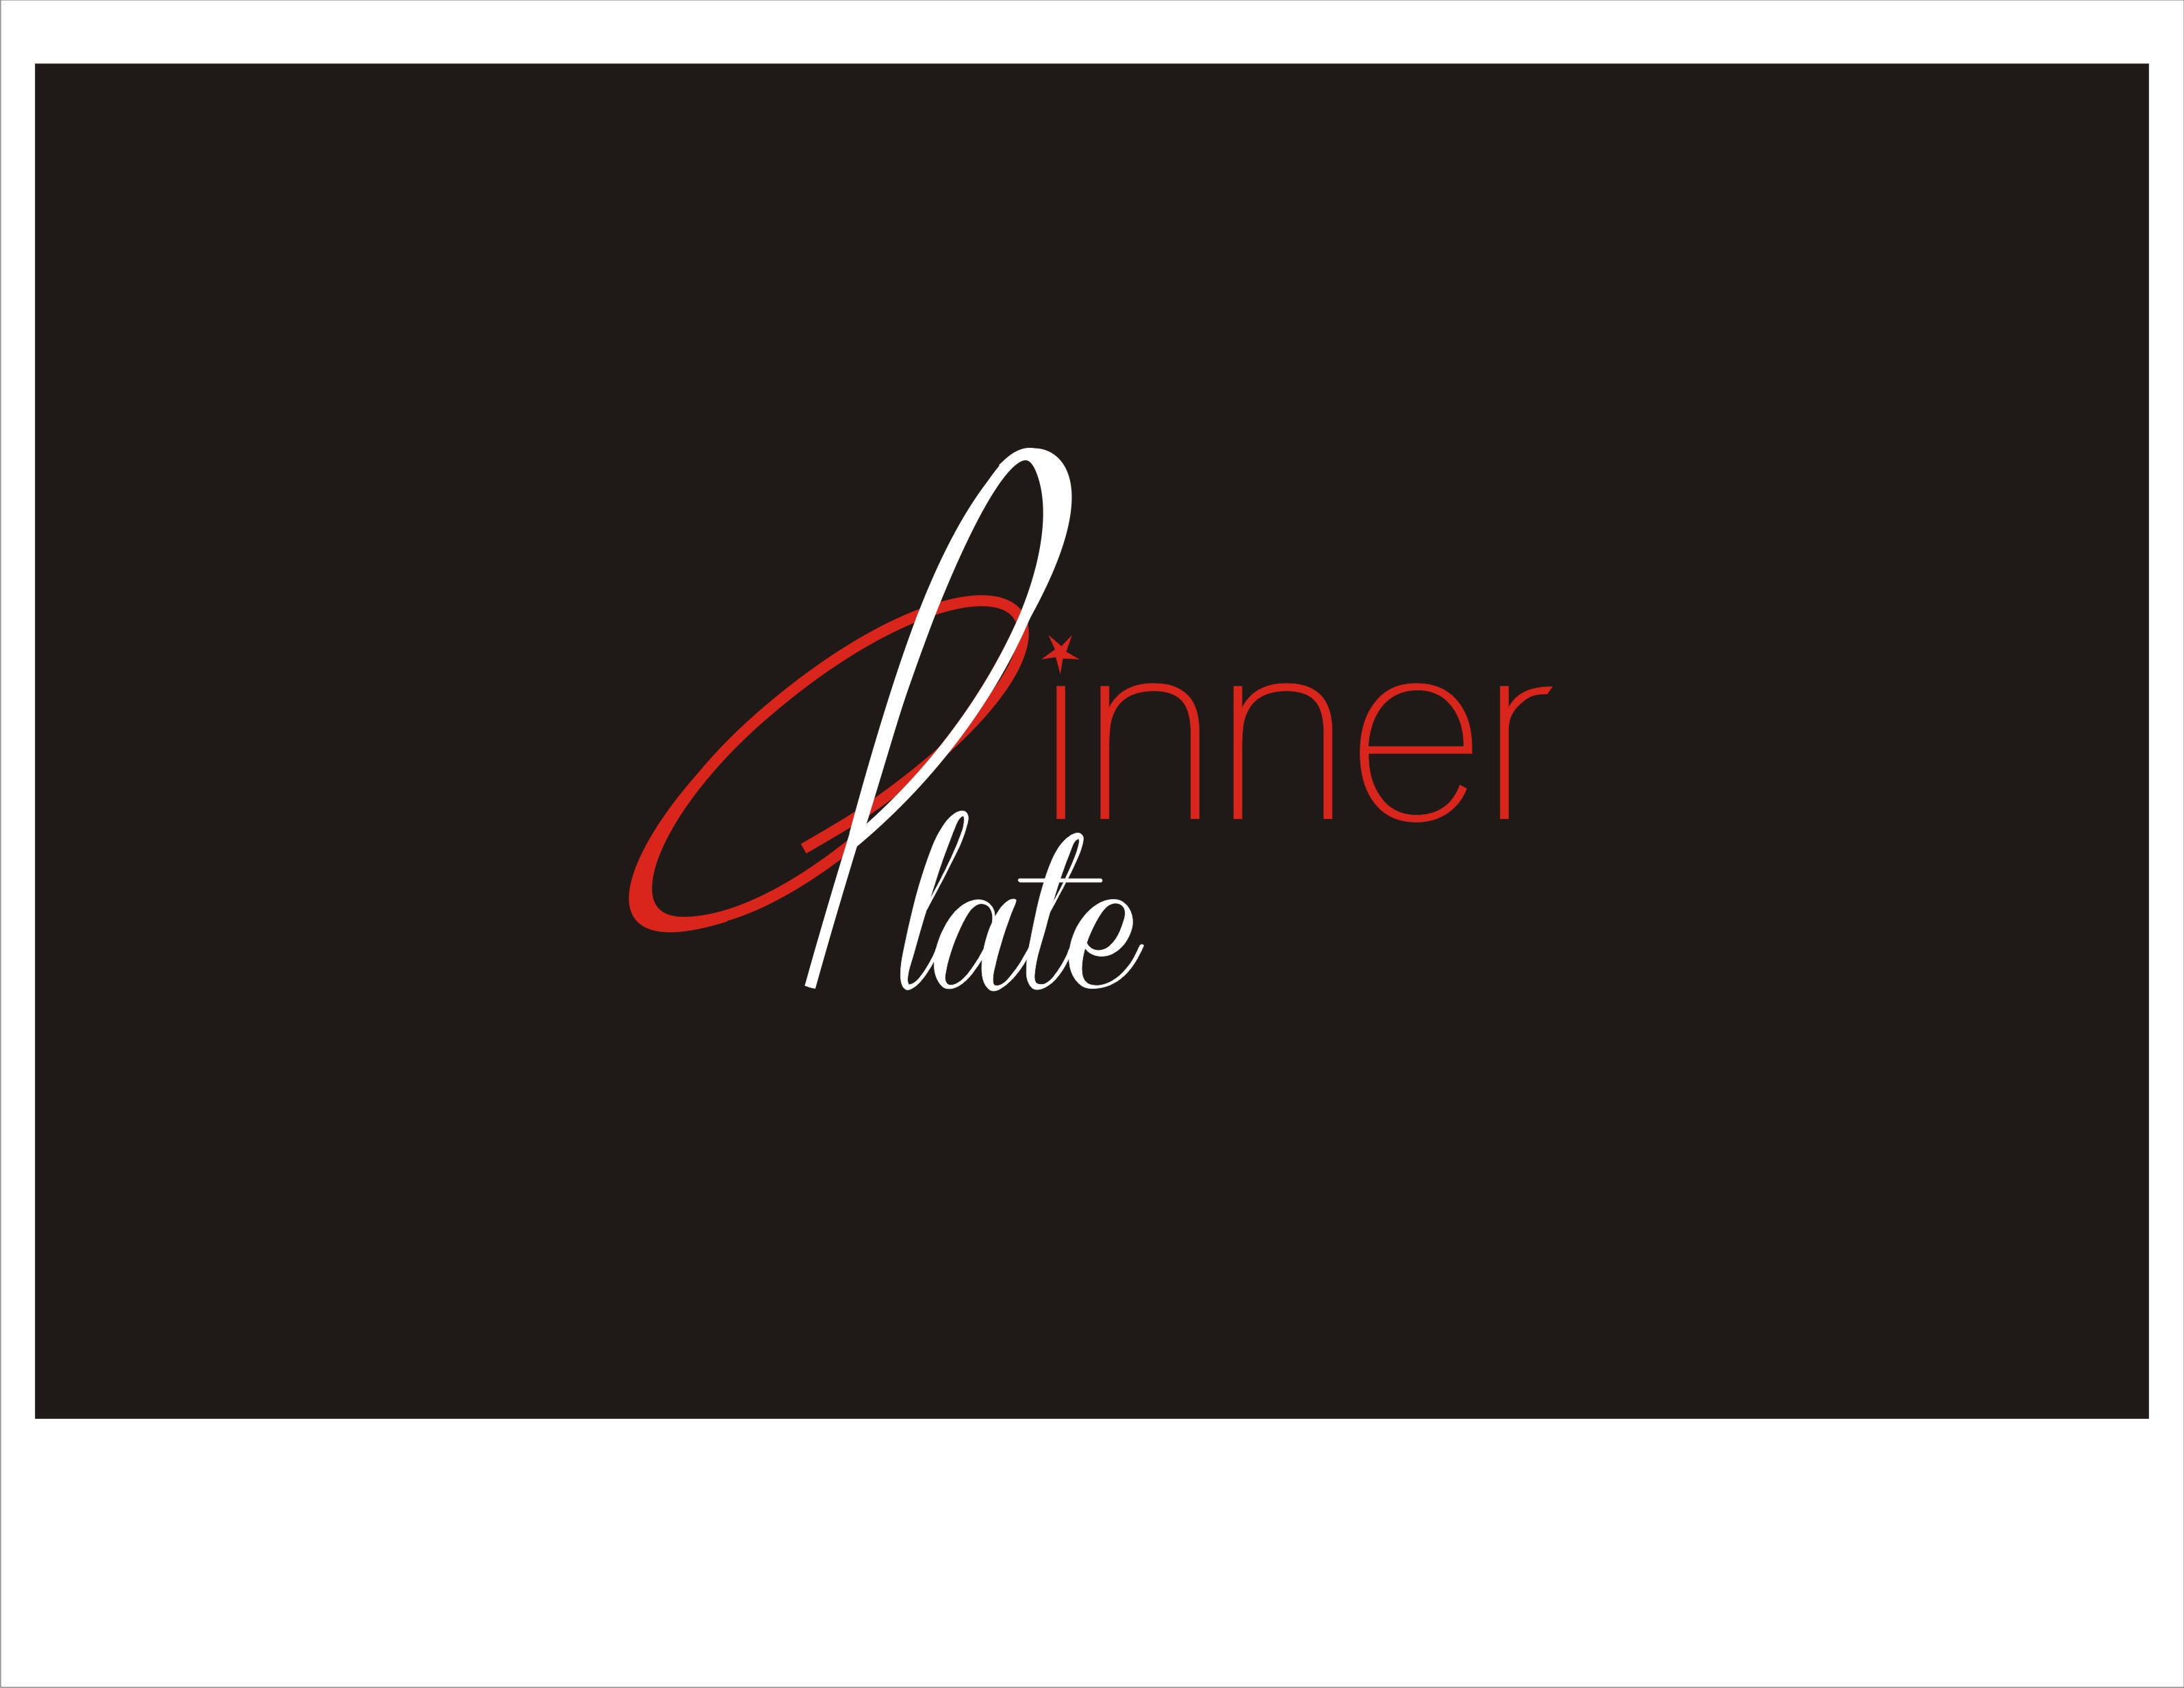 Logo Design by Sandip Kumar - Entry No. 104 in the Logo Design Contest Imaginative Logo Design for Dinner Plate.